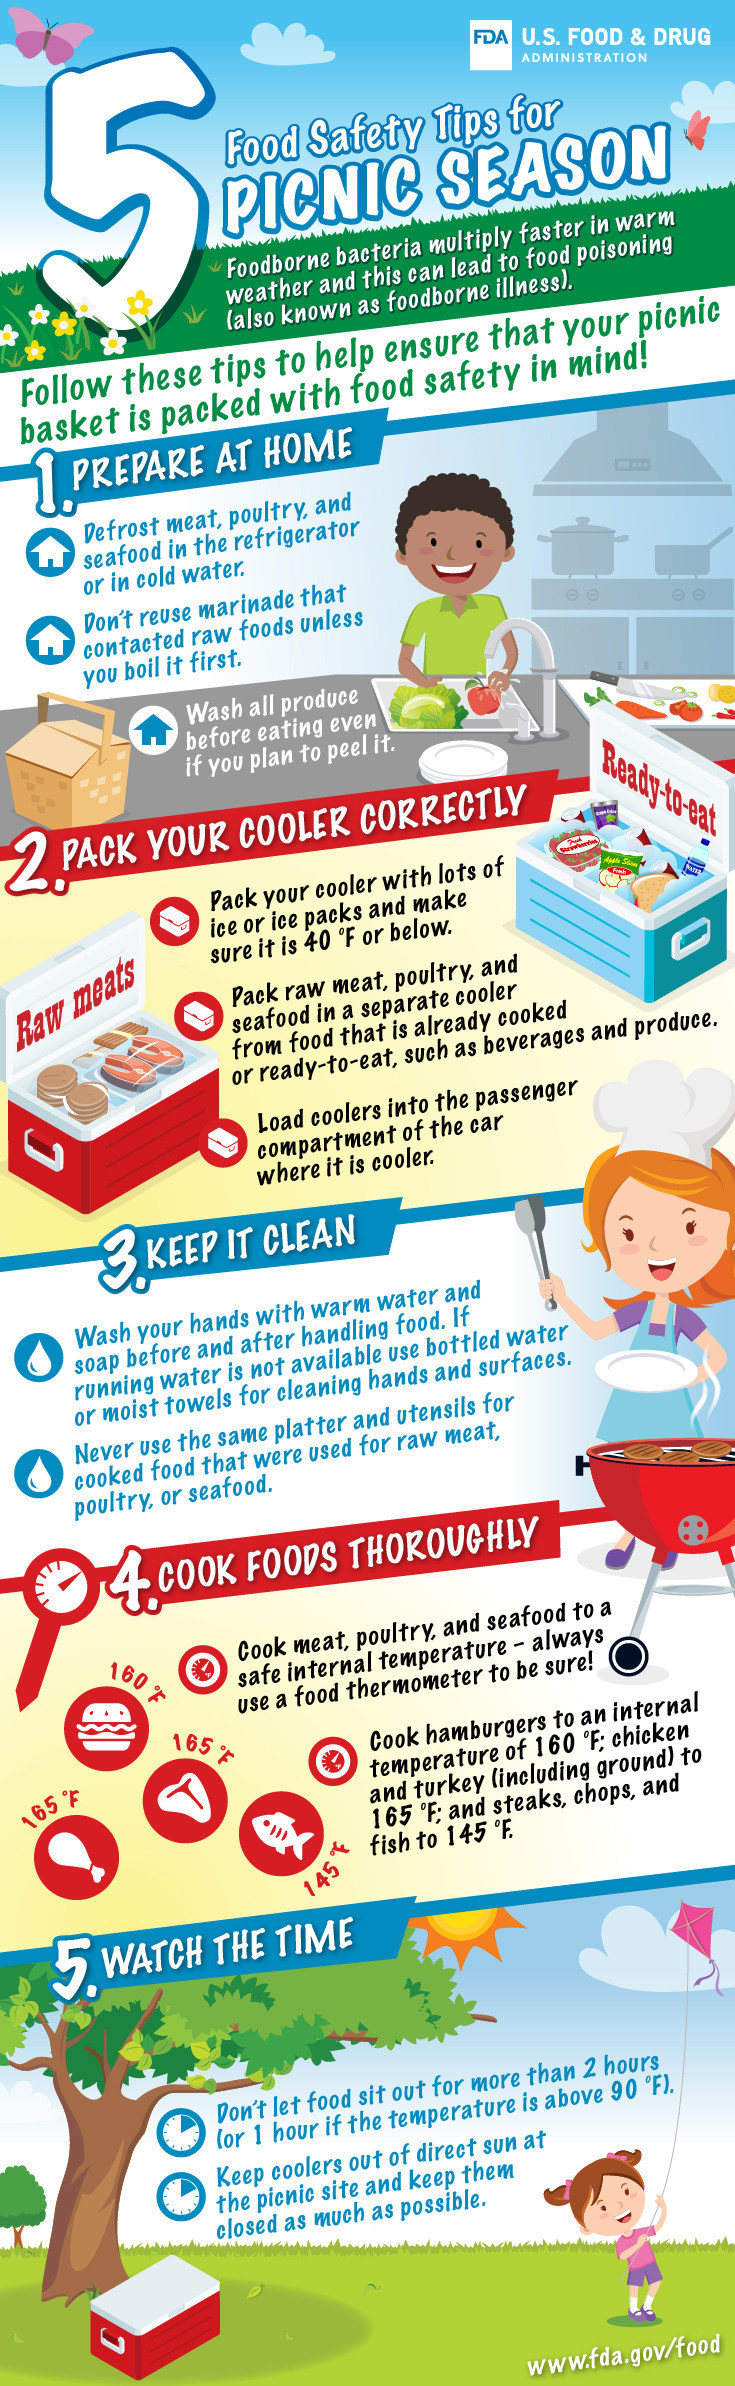 5 Food Safety Tips for Picnic Season. Foodborne bacteria multiply faster in warm weather and this can lead to food poisoning (also known as foodborne illness). Follow these tips to help ensure that your picnic basket is packed with food safety in mind!